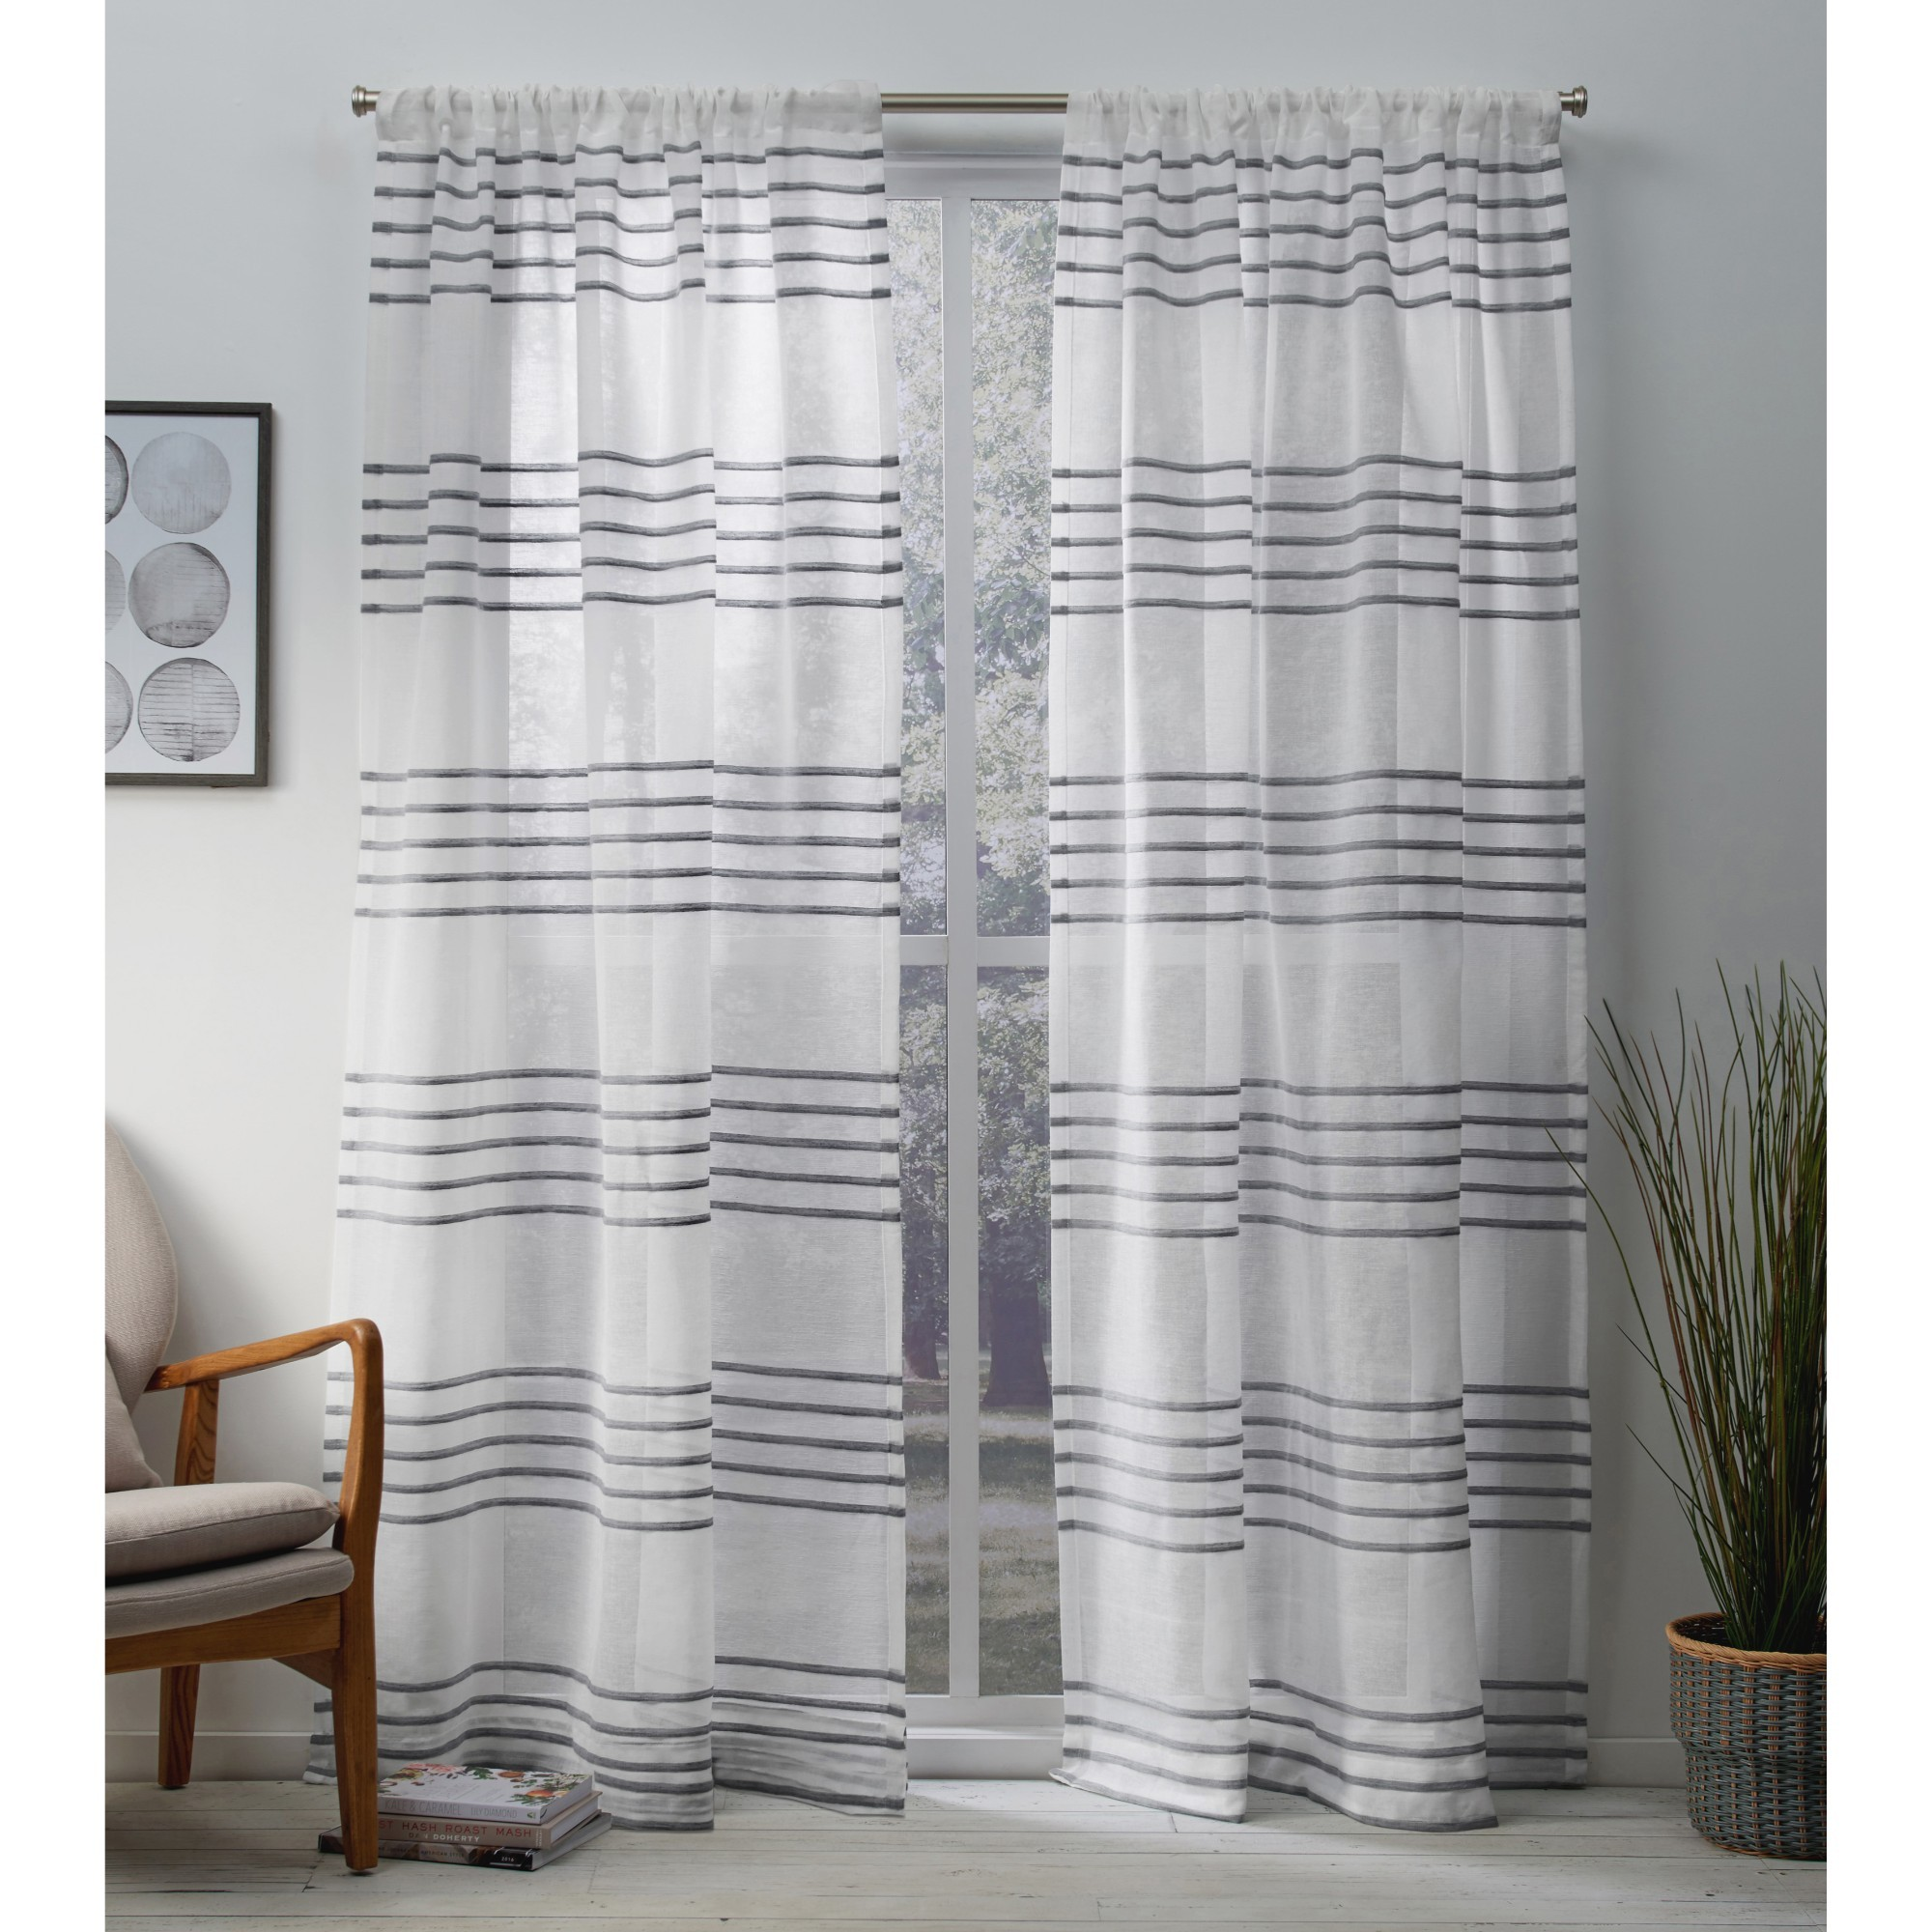 Exclusive Home Monet Pleated Sheer Linen Cabana Stripe Window Curtain Panel Pair with Rod Pocket